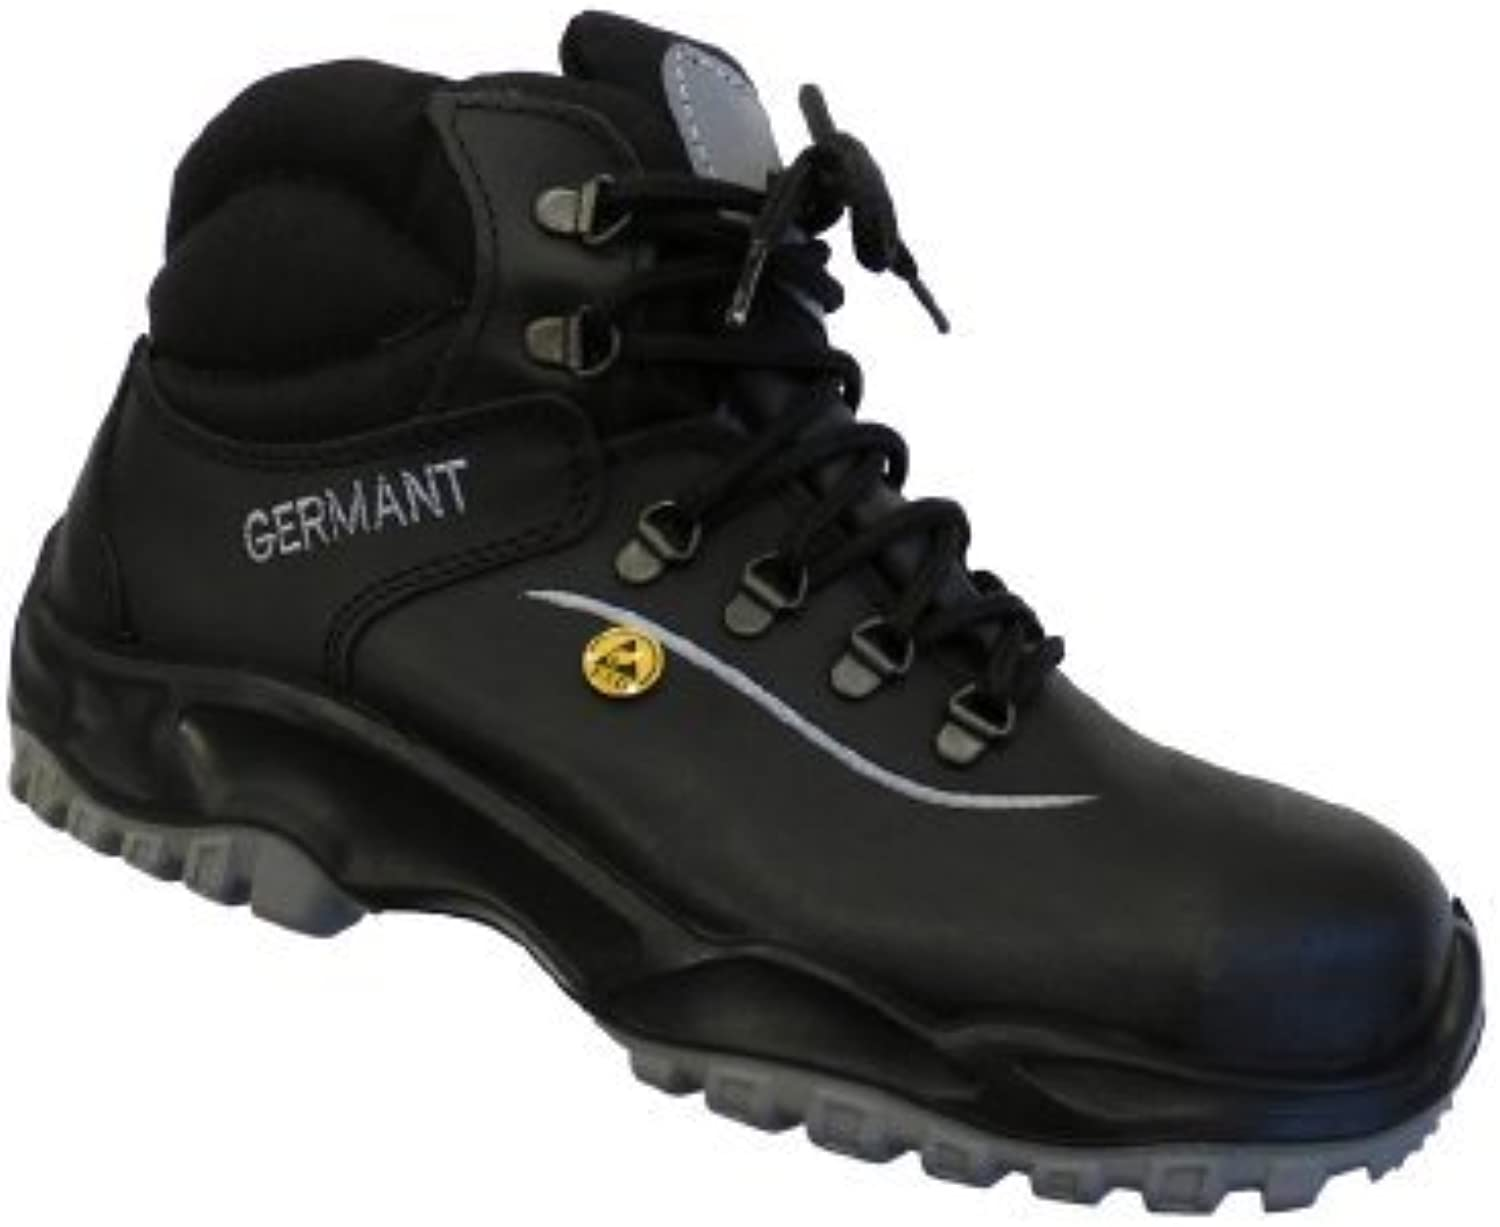 GERMANT 4251395703663 Safety Boots G5480 S3 ESD Size 45